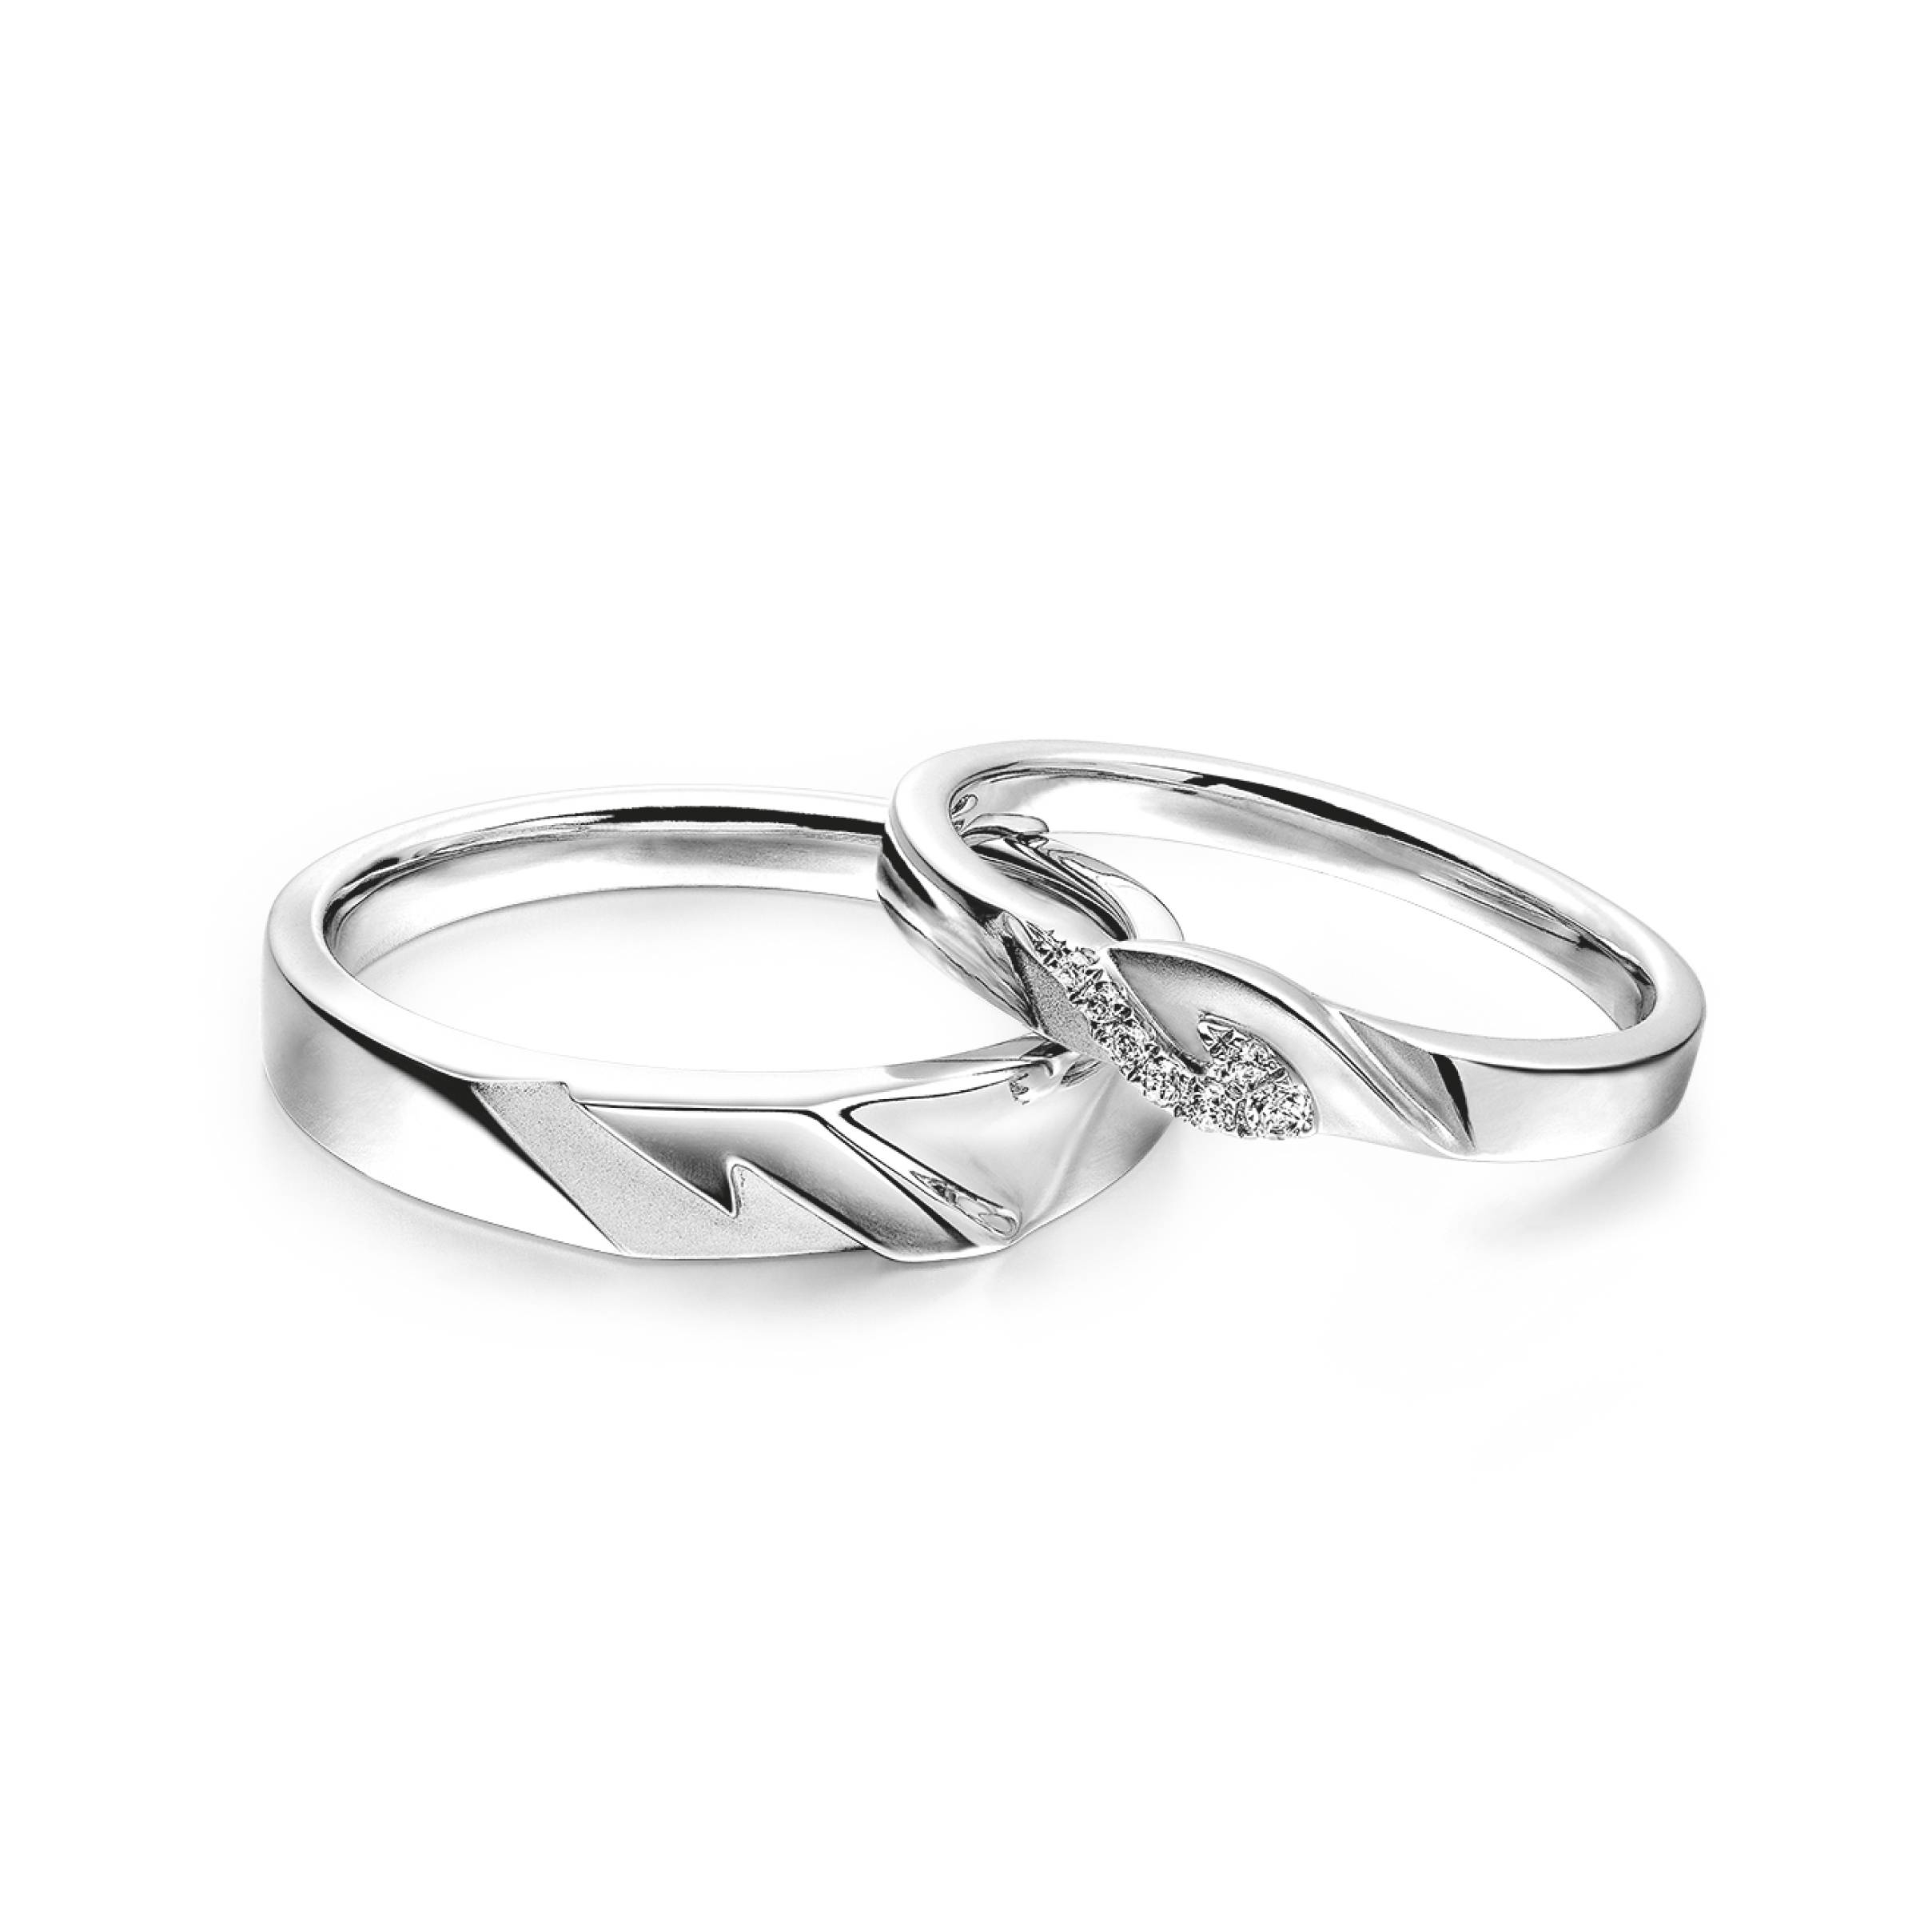 Wedding Collection – Lukfook Jewellery|Lukfook Jewellery Official Throughout 18K White Gold Wedding Rings (View 14 of 15)